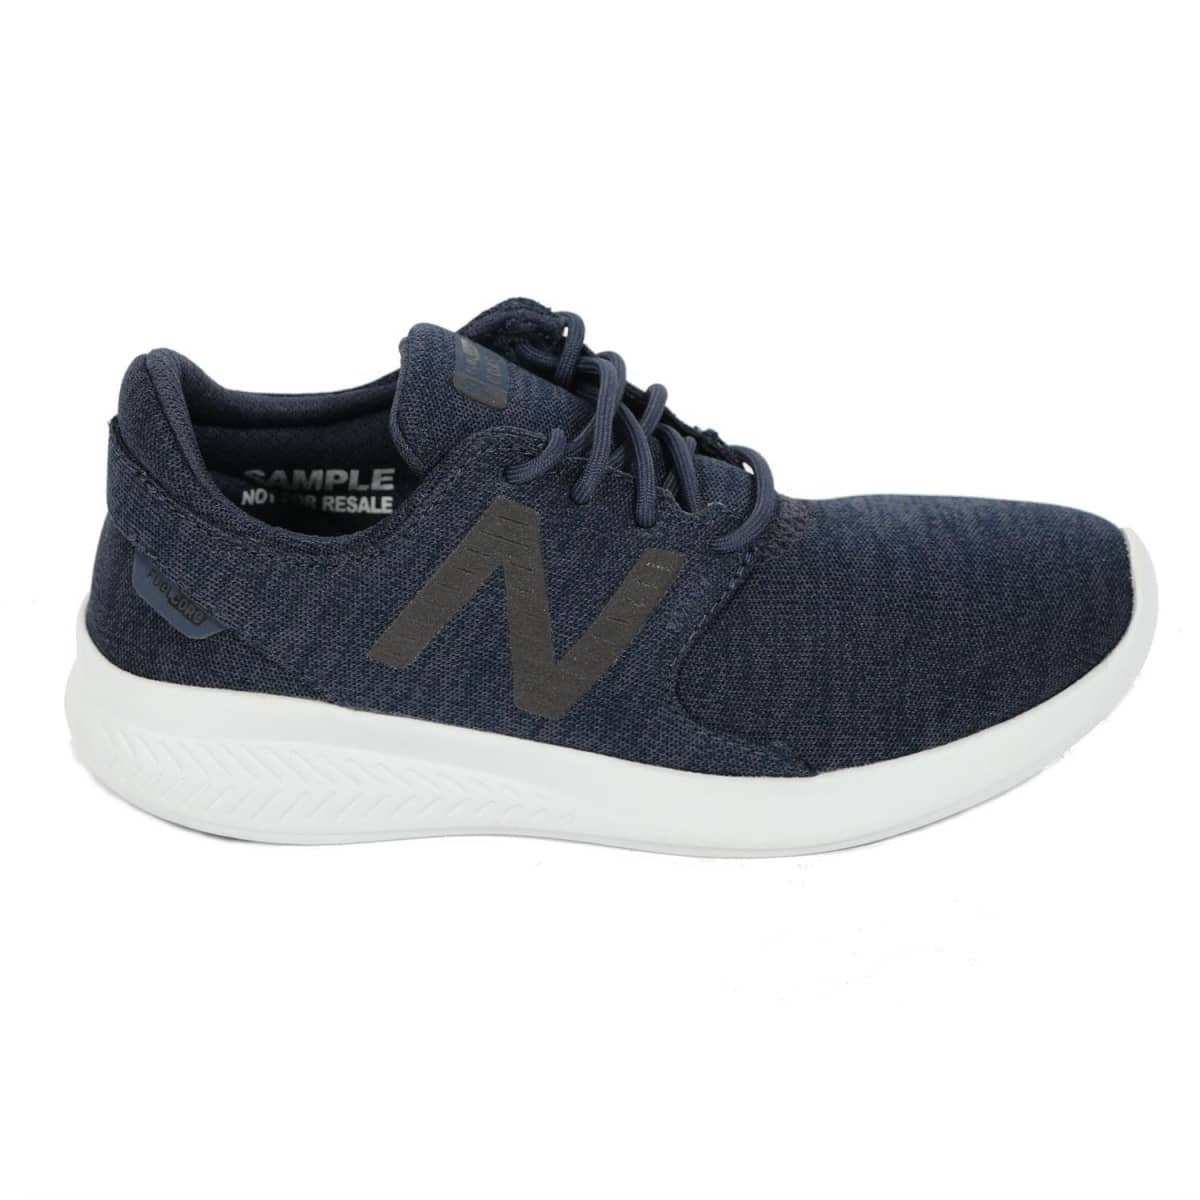 info for f55f1 af17c Footwear New Balance Products | Sportsmans Warehouse